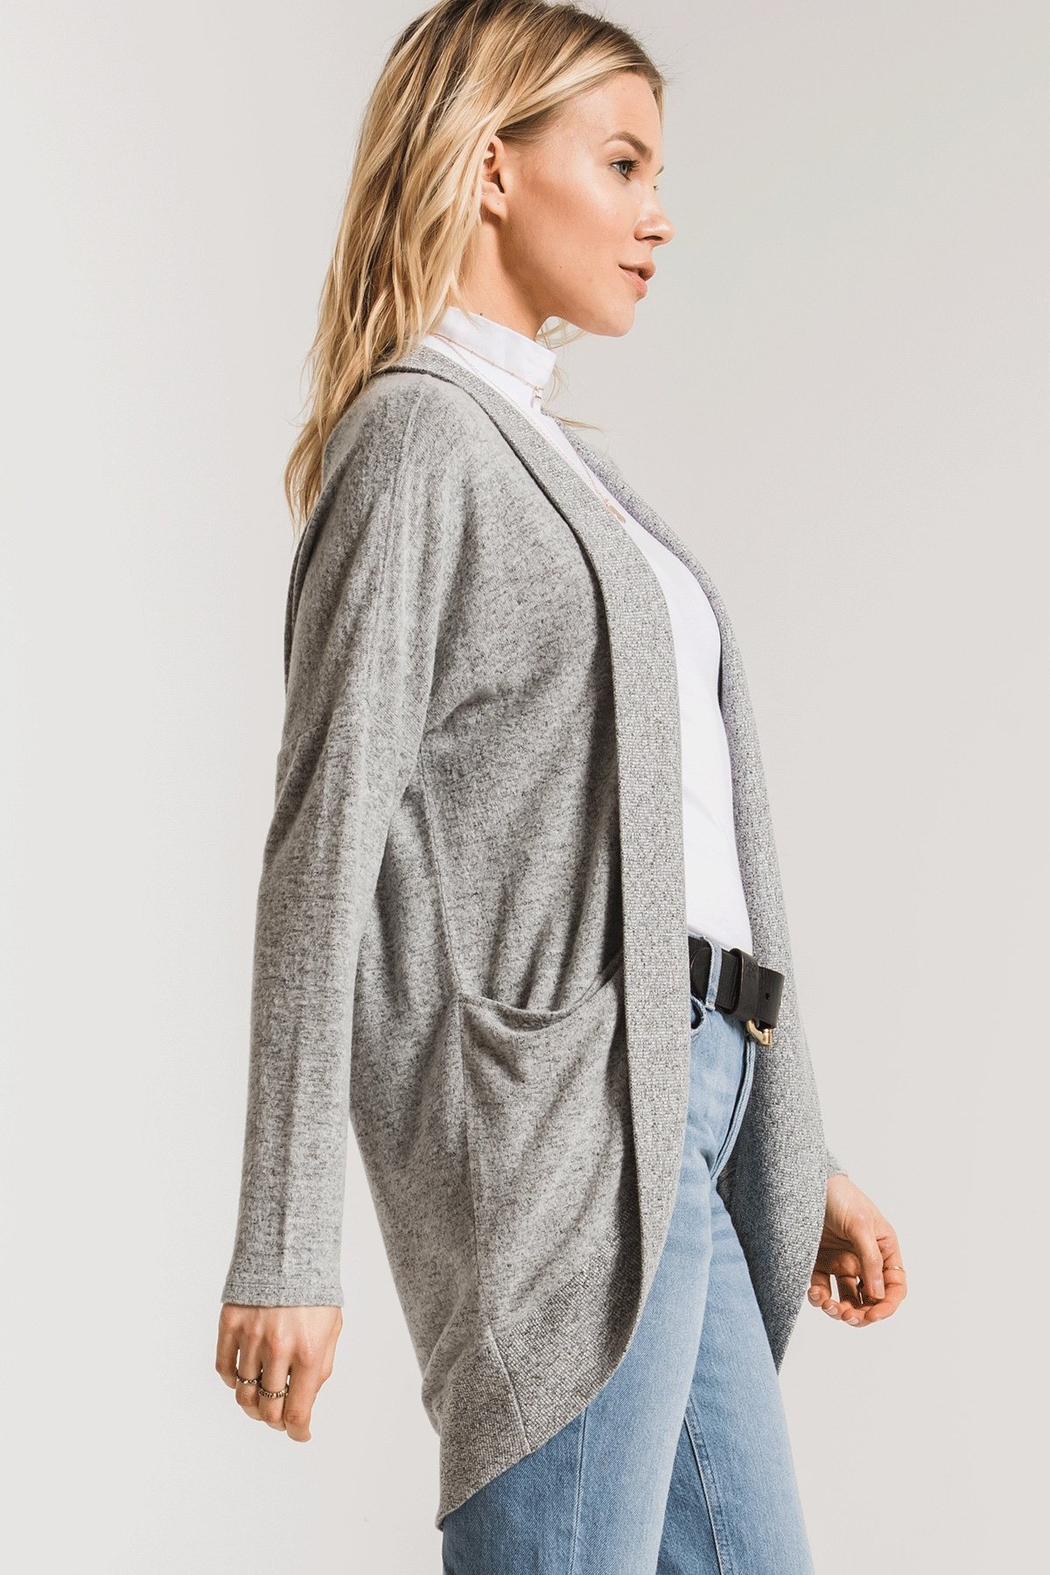 z supply Marled Sweater Knit Coccoon Cardigan - Side Cropped Image